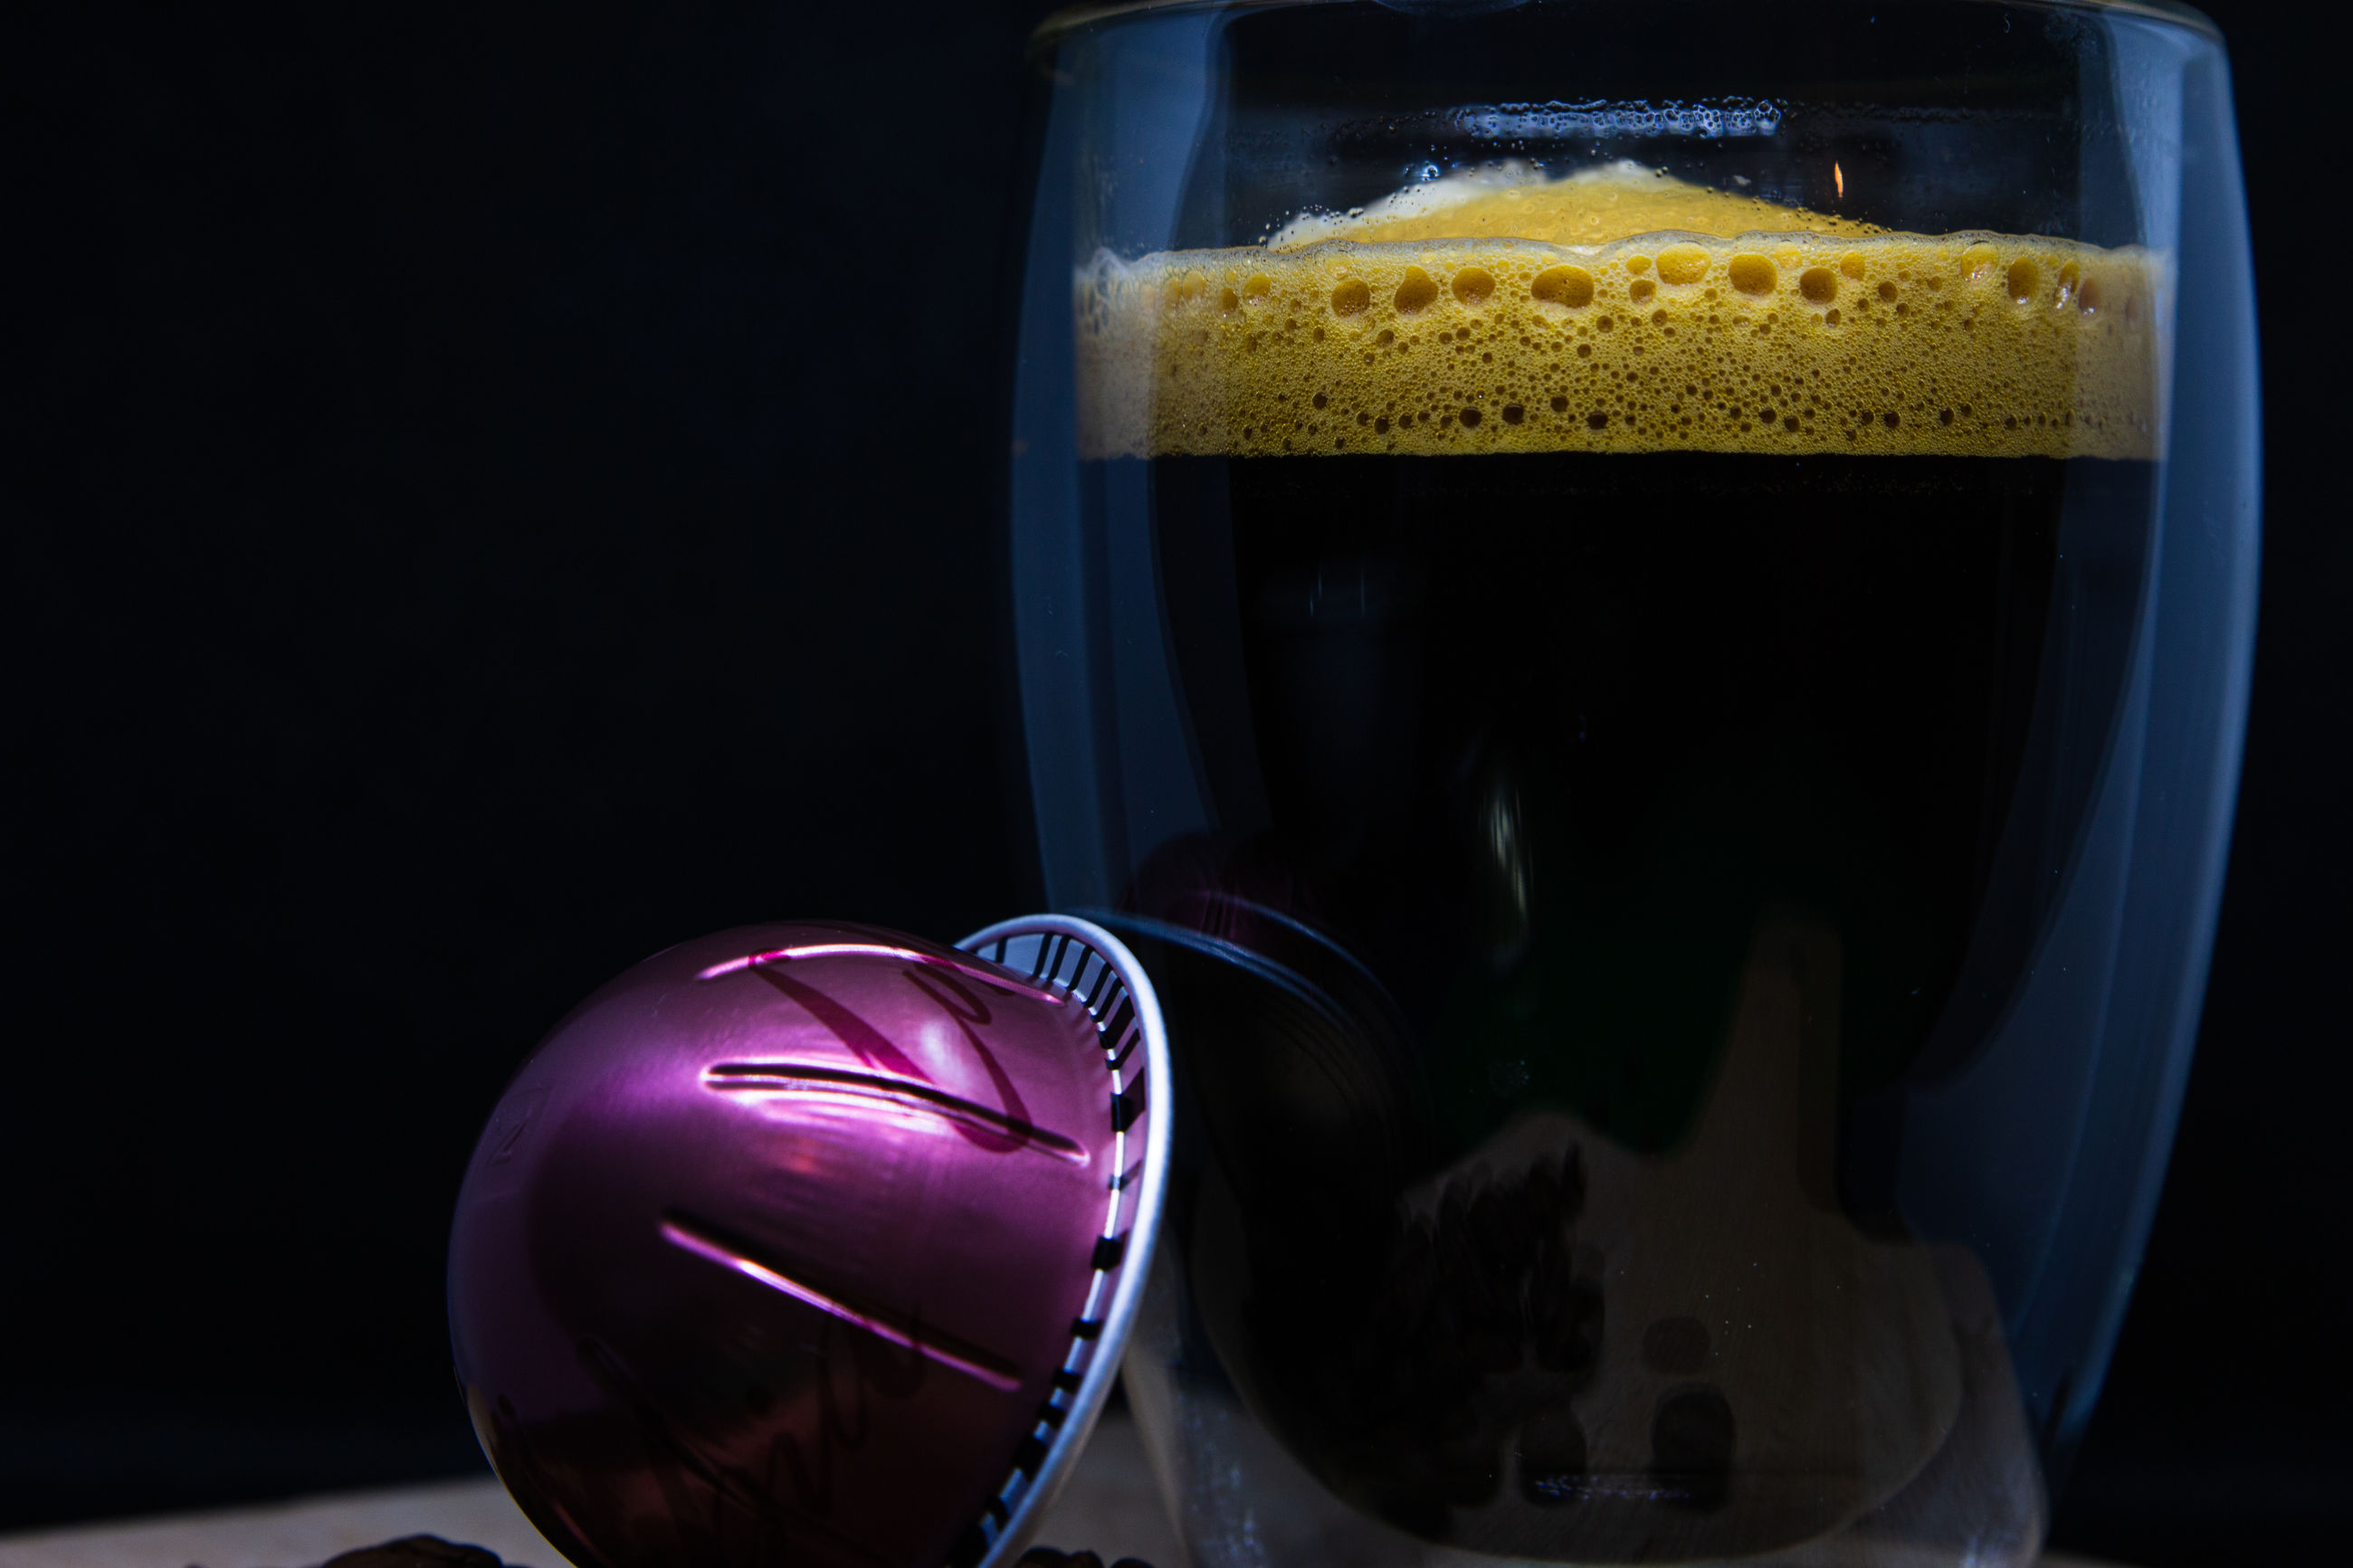 still life, close-up, indoors, drink, refreshment, no people, food and drink, transparent, studio shot, glass, black background, freshness, alcohol, glass - material, frothy drink, household equipment, focus on foreground, drinking glass, coffee, purple